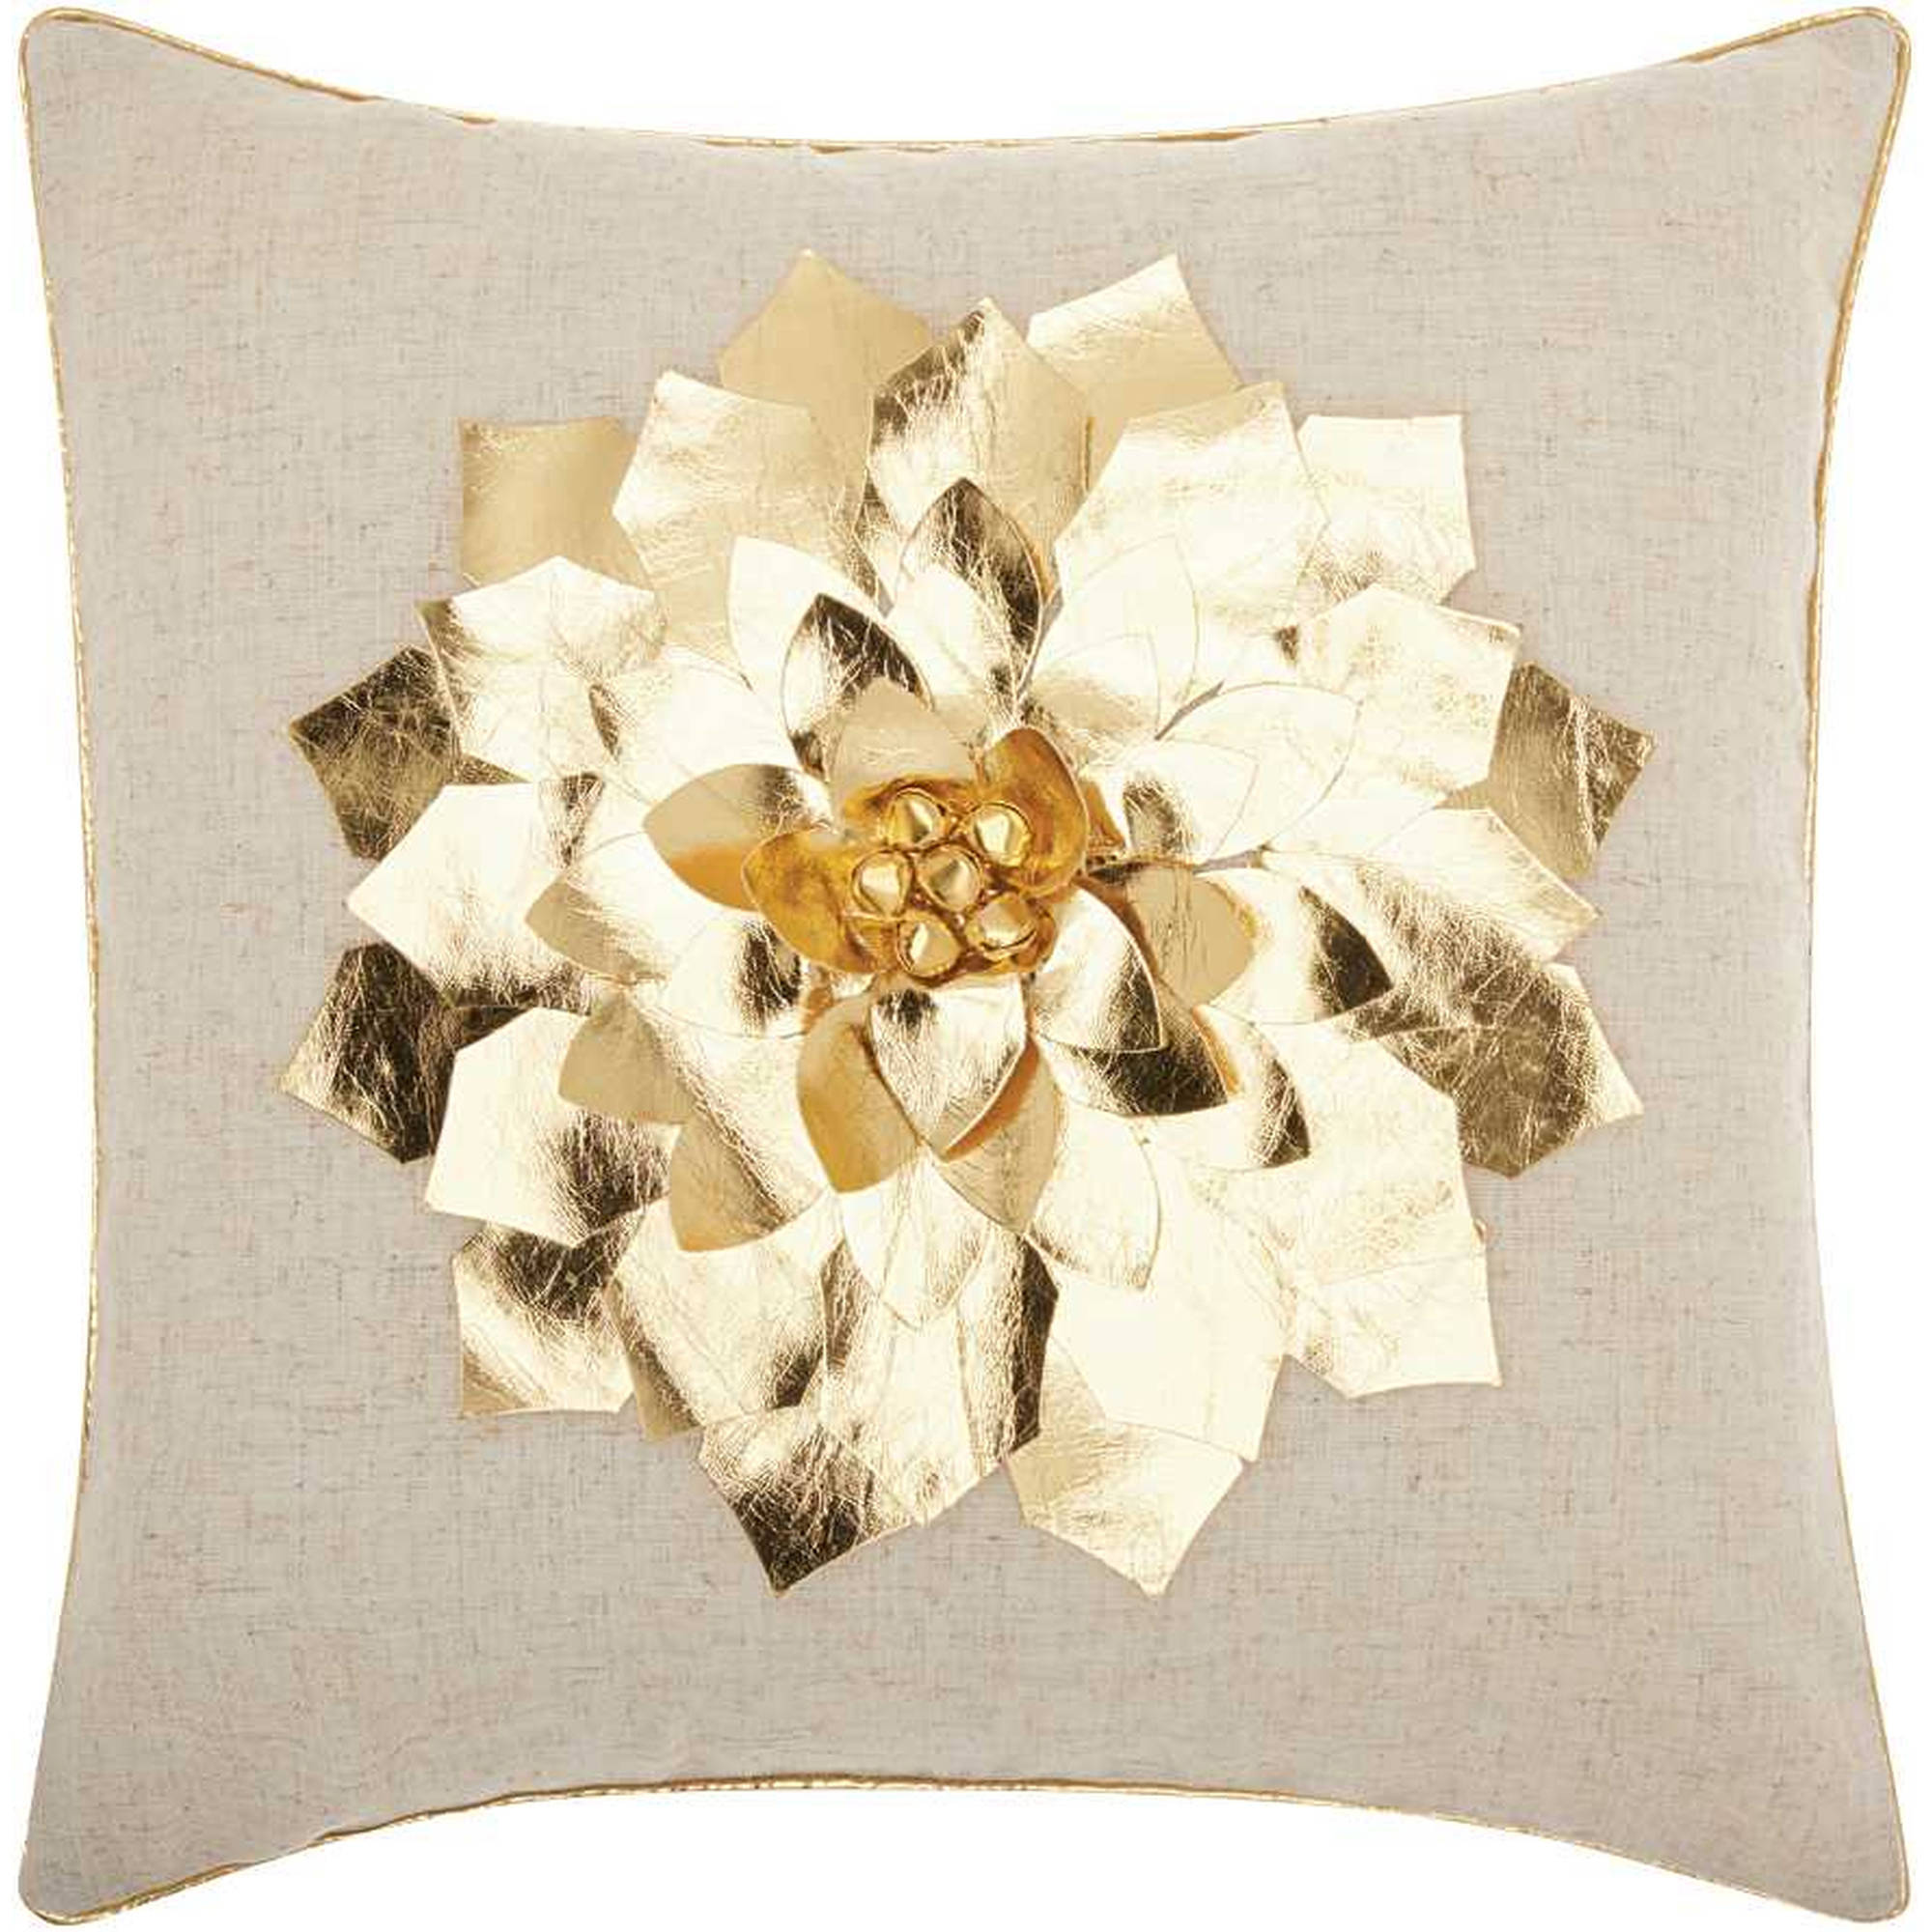 Nourison Home For The Holiday Metallic Poinsettia Throw Pillow, Gold by Nourison